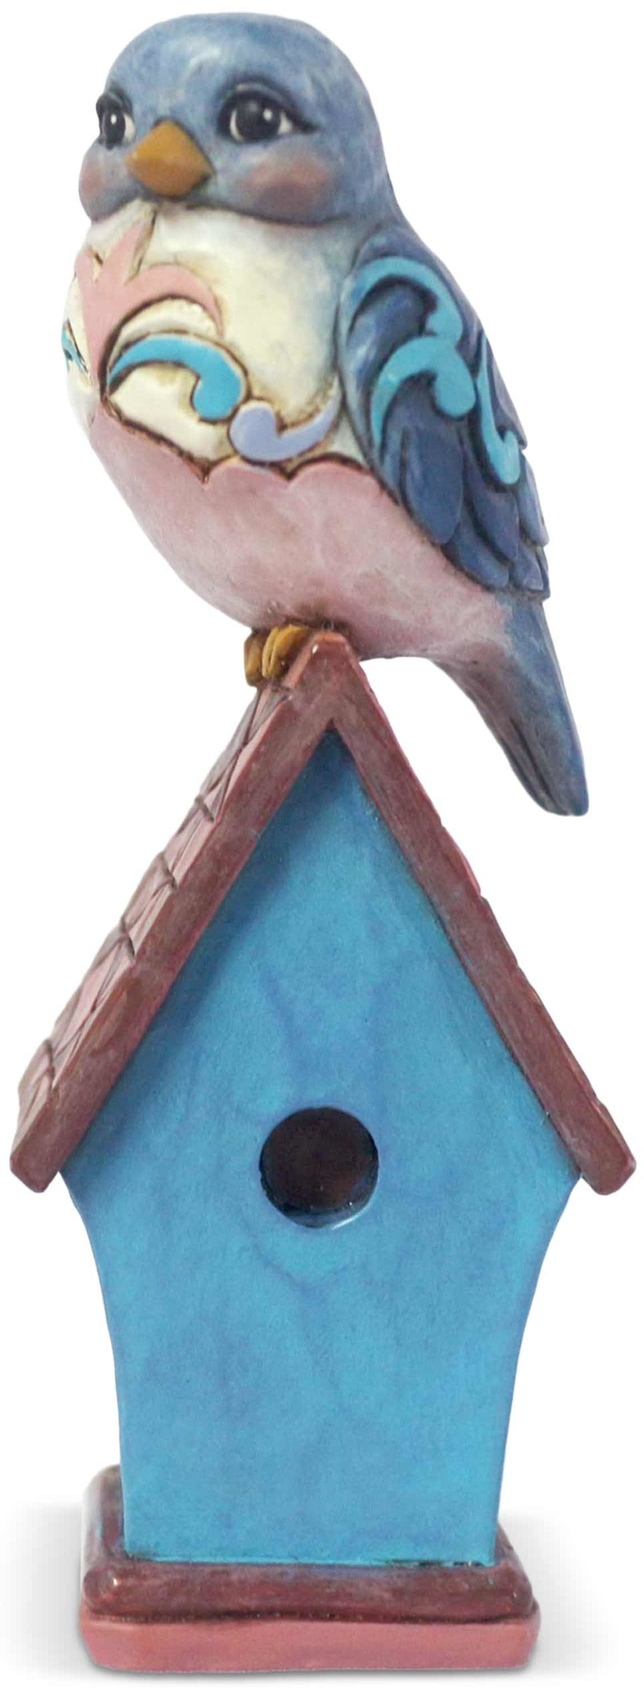 Special Sale 6003981 Jim Shore 6003981 Bluebird on Birdhouse Mini